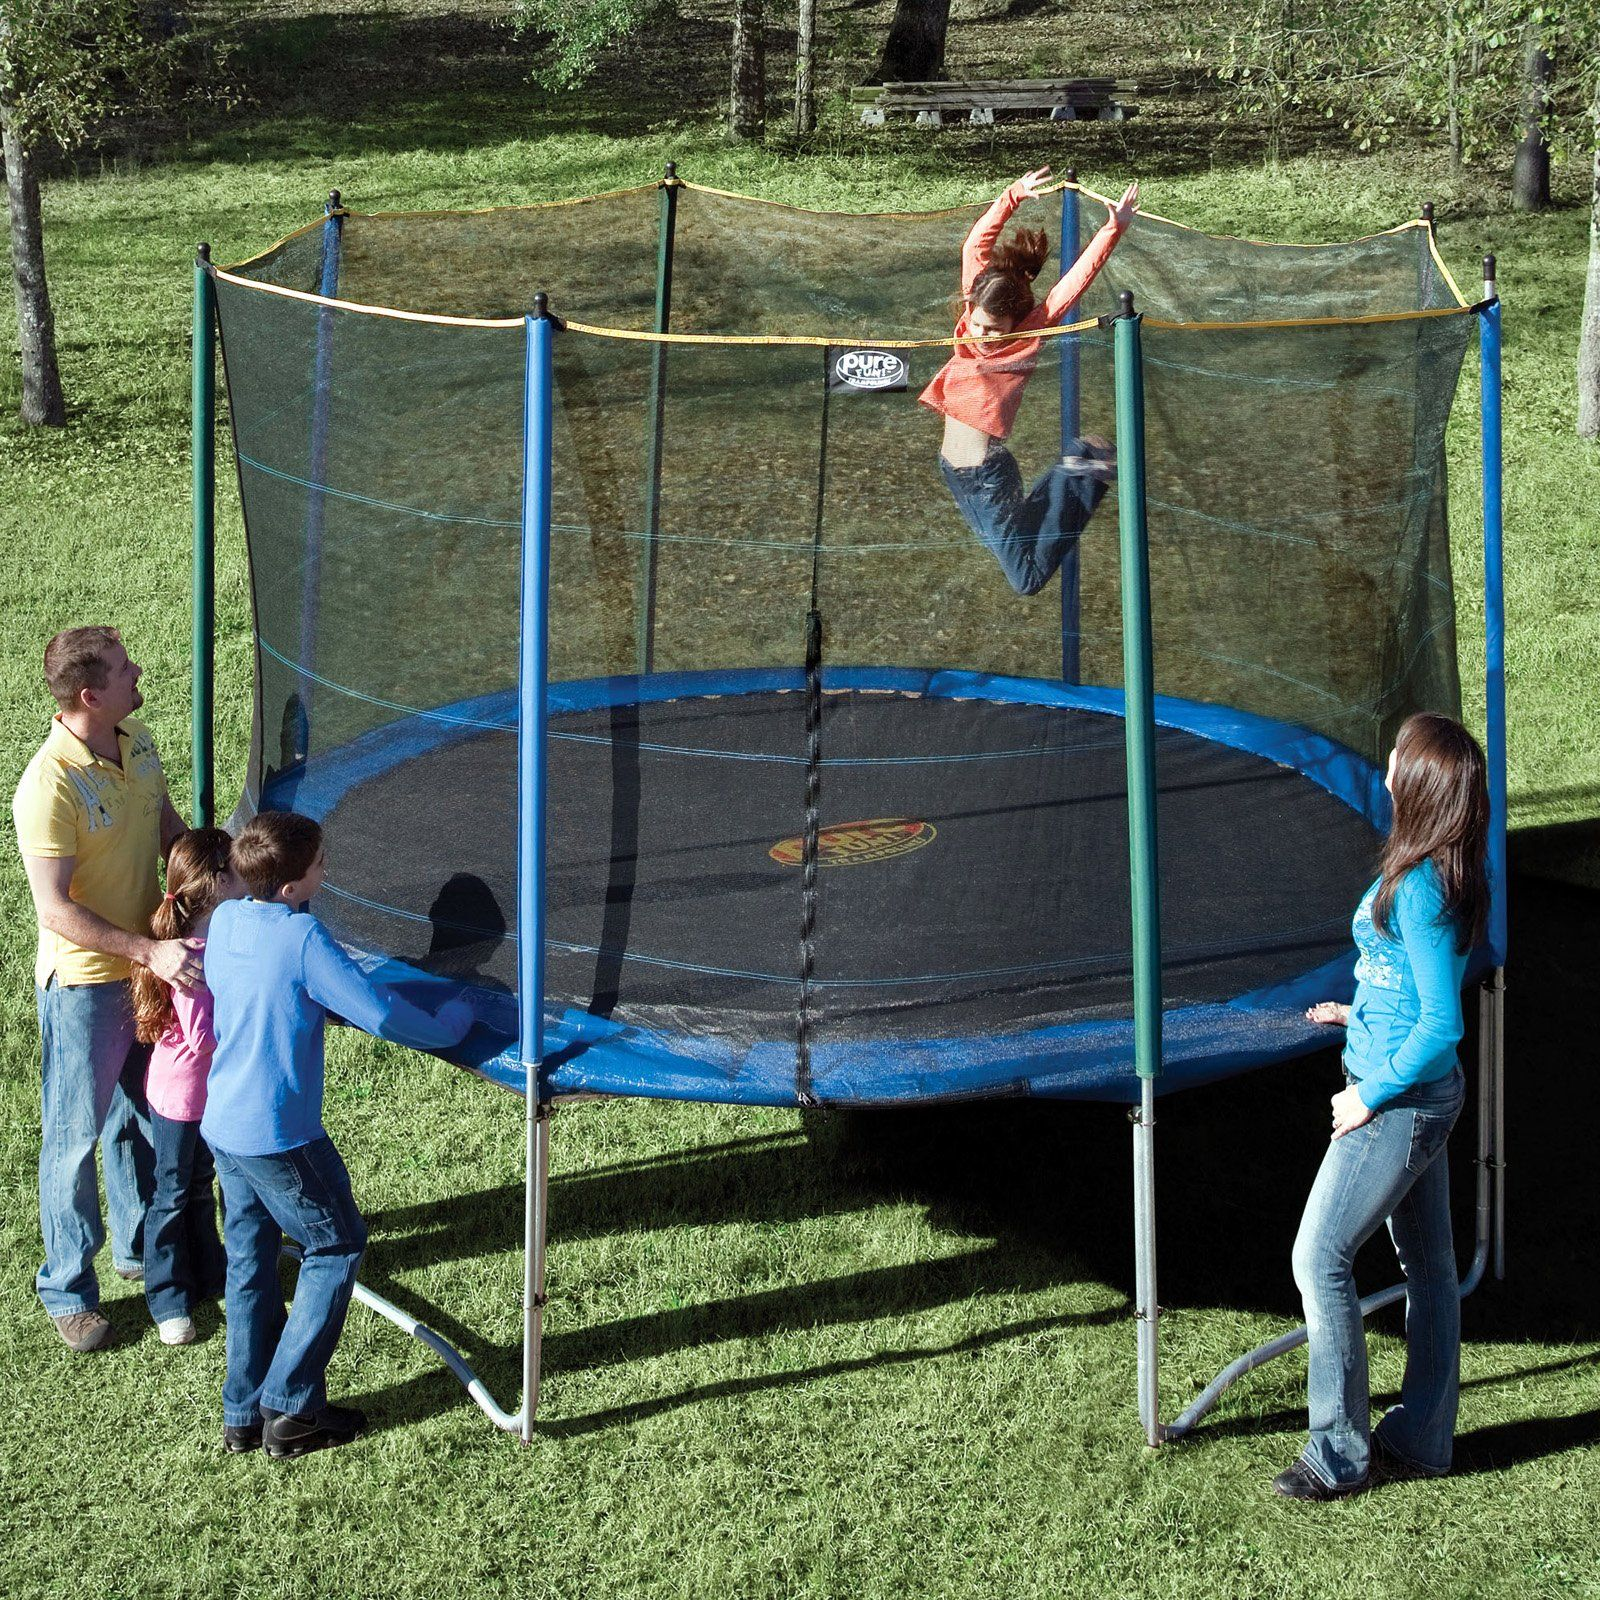 Pure Fun 12 foot trampoline, one of the top trampolines